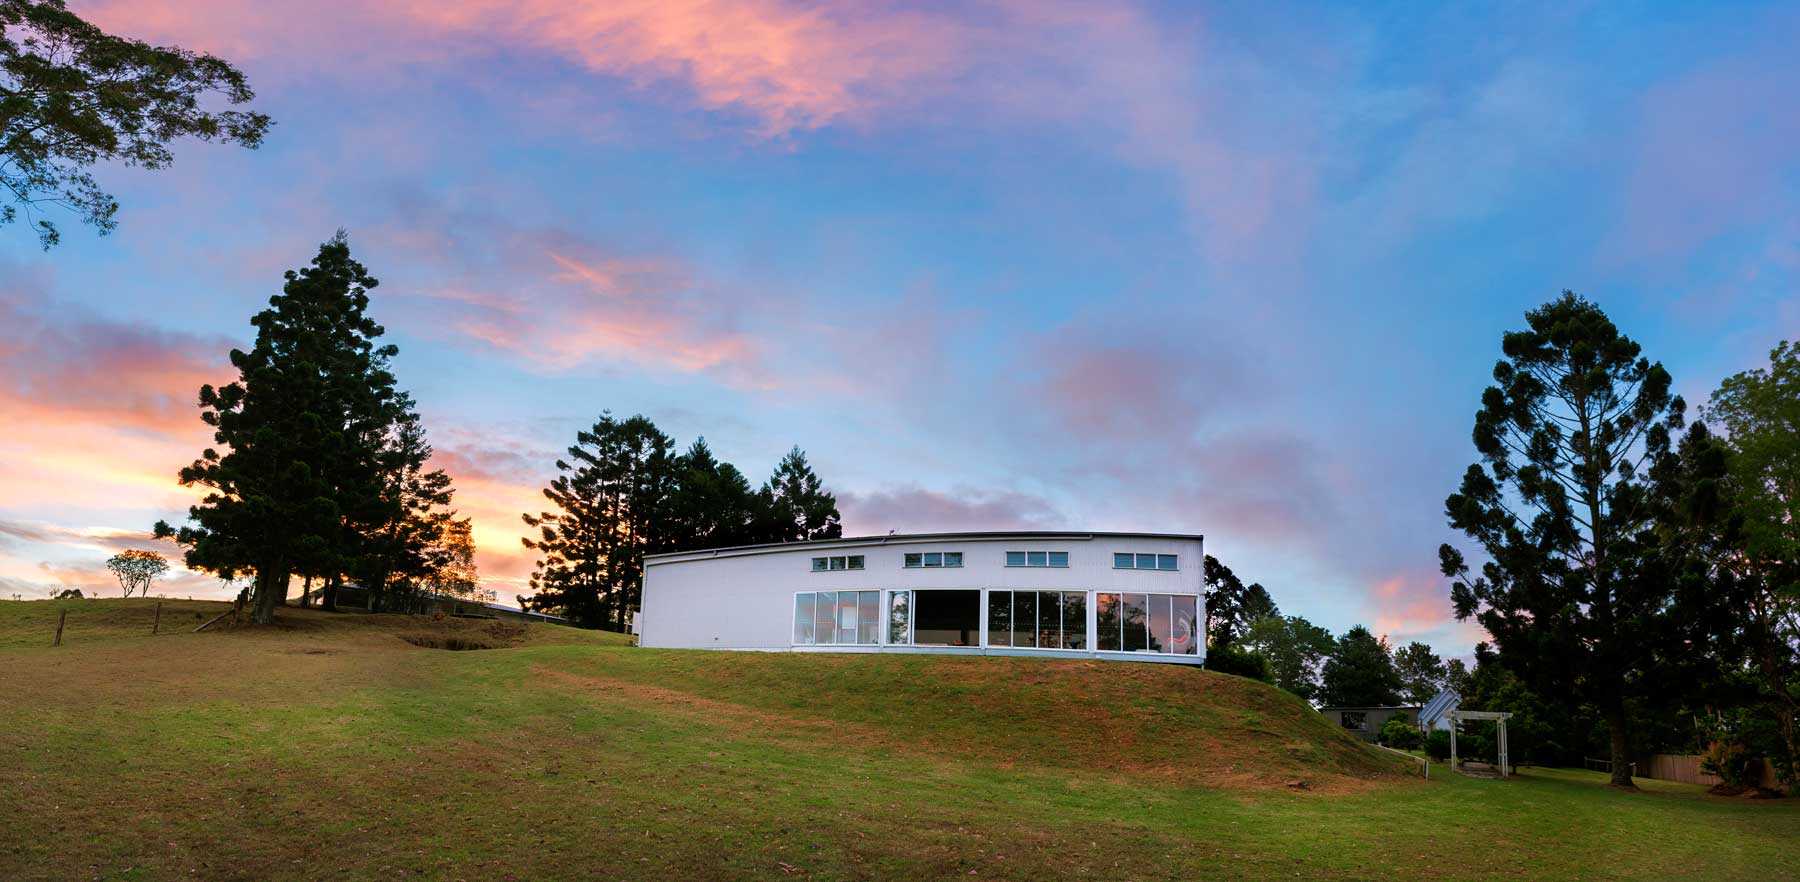 The Zone Gallery and Creative Hub, Maleny